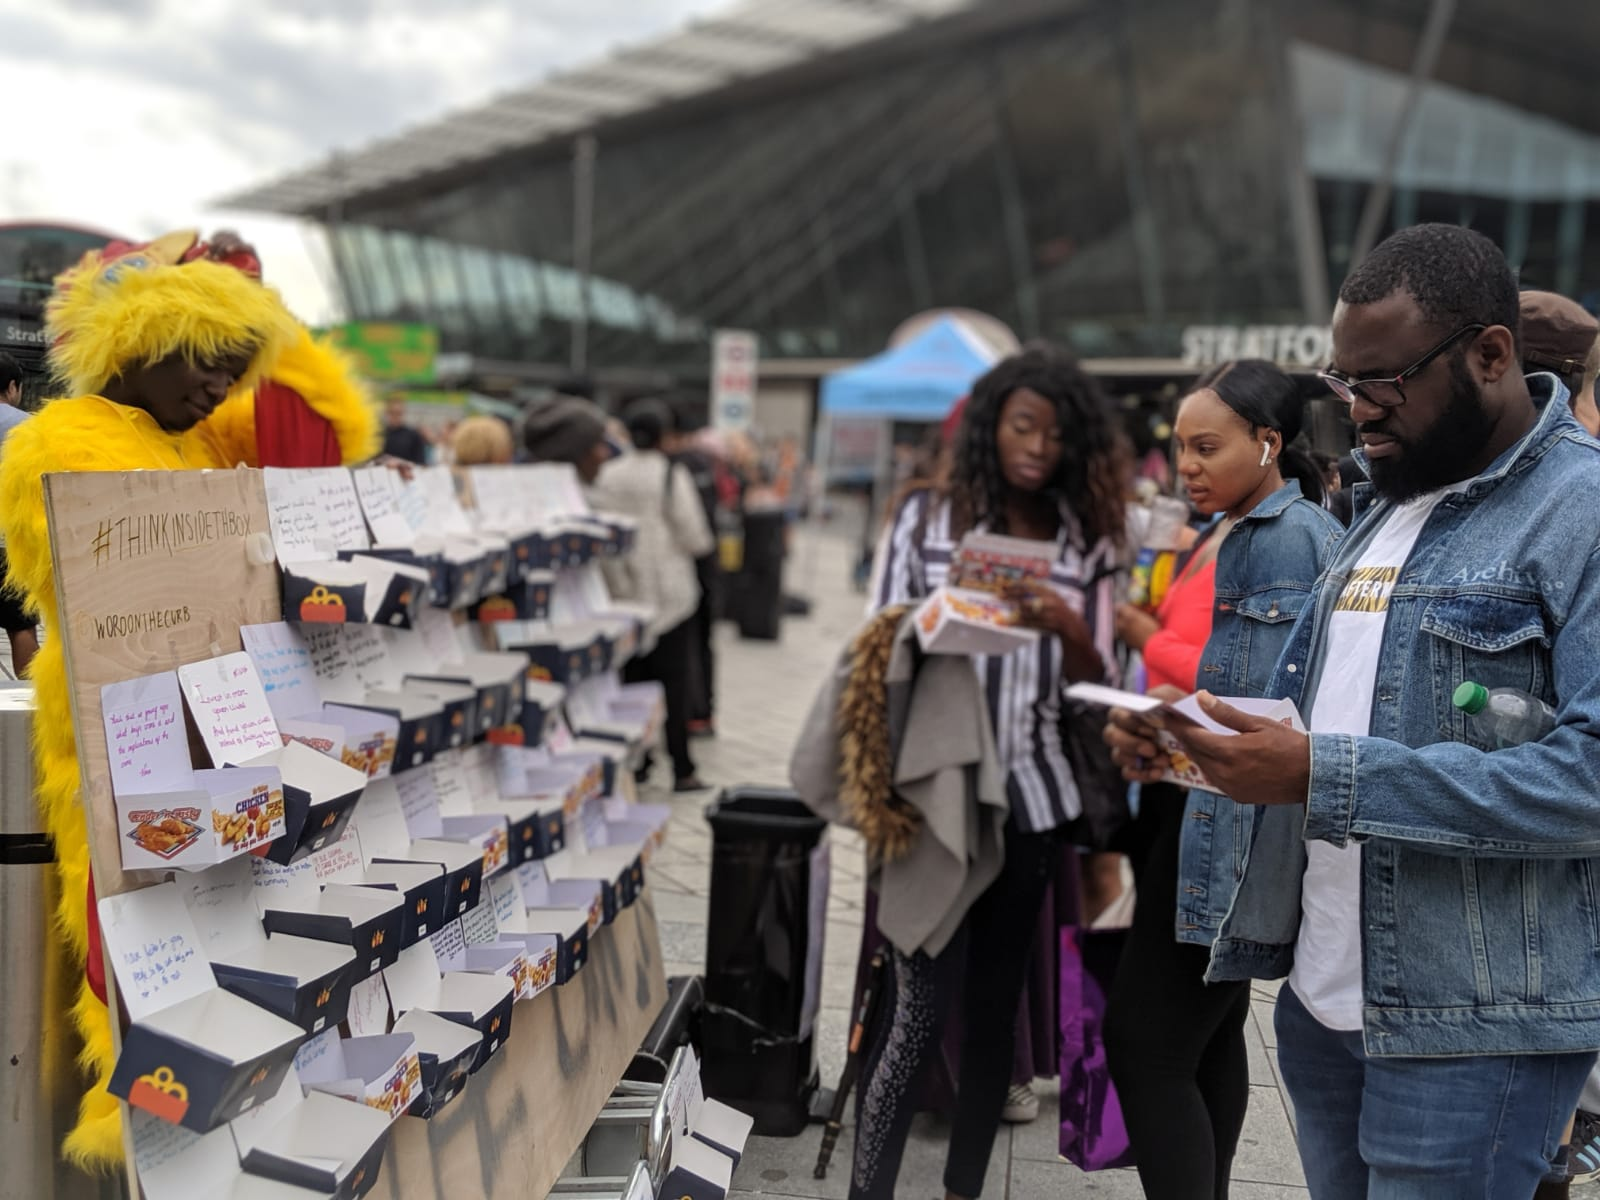 Londoners write messages for chicken boxes as part of Wartemberg and Uchea's #ThinkInsideTheBox campaign